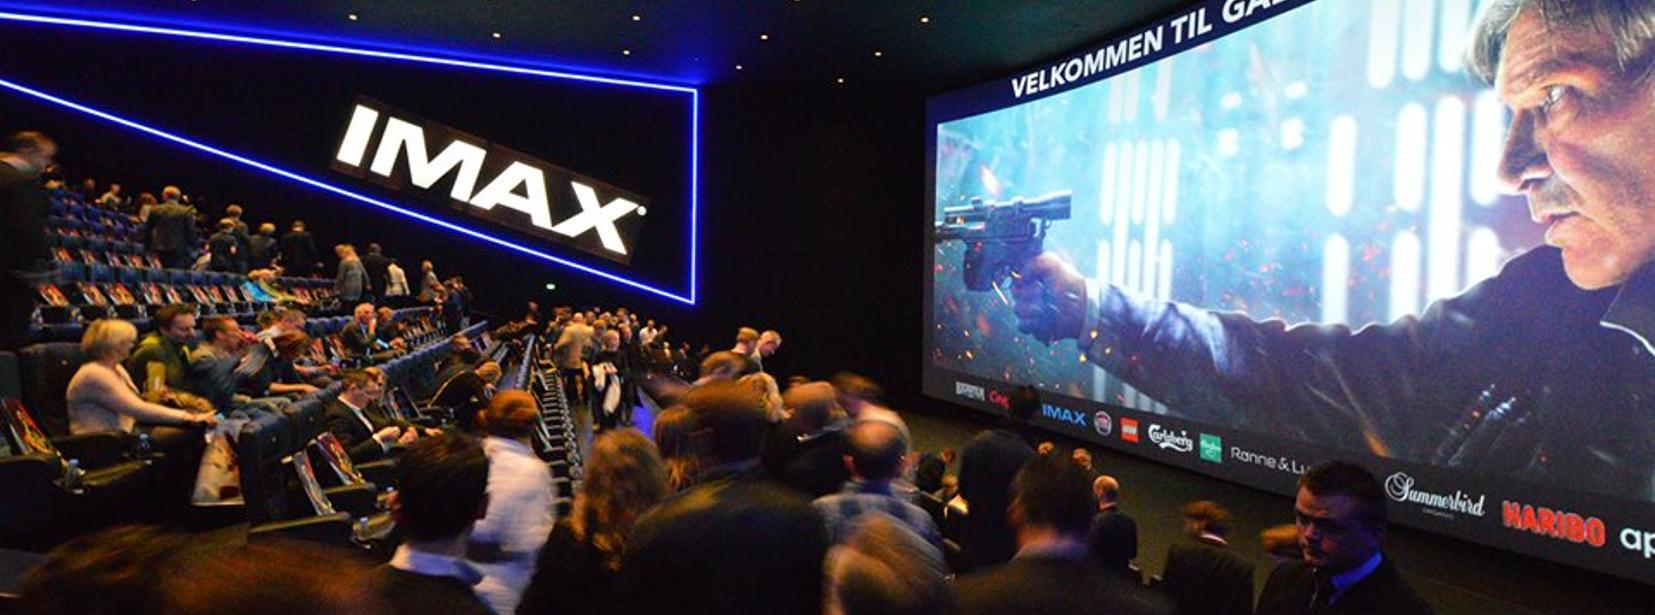 Cinemaxx Coupons Cinemaxx Copenhagen Mycityhighlight